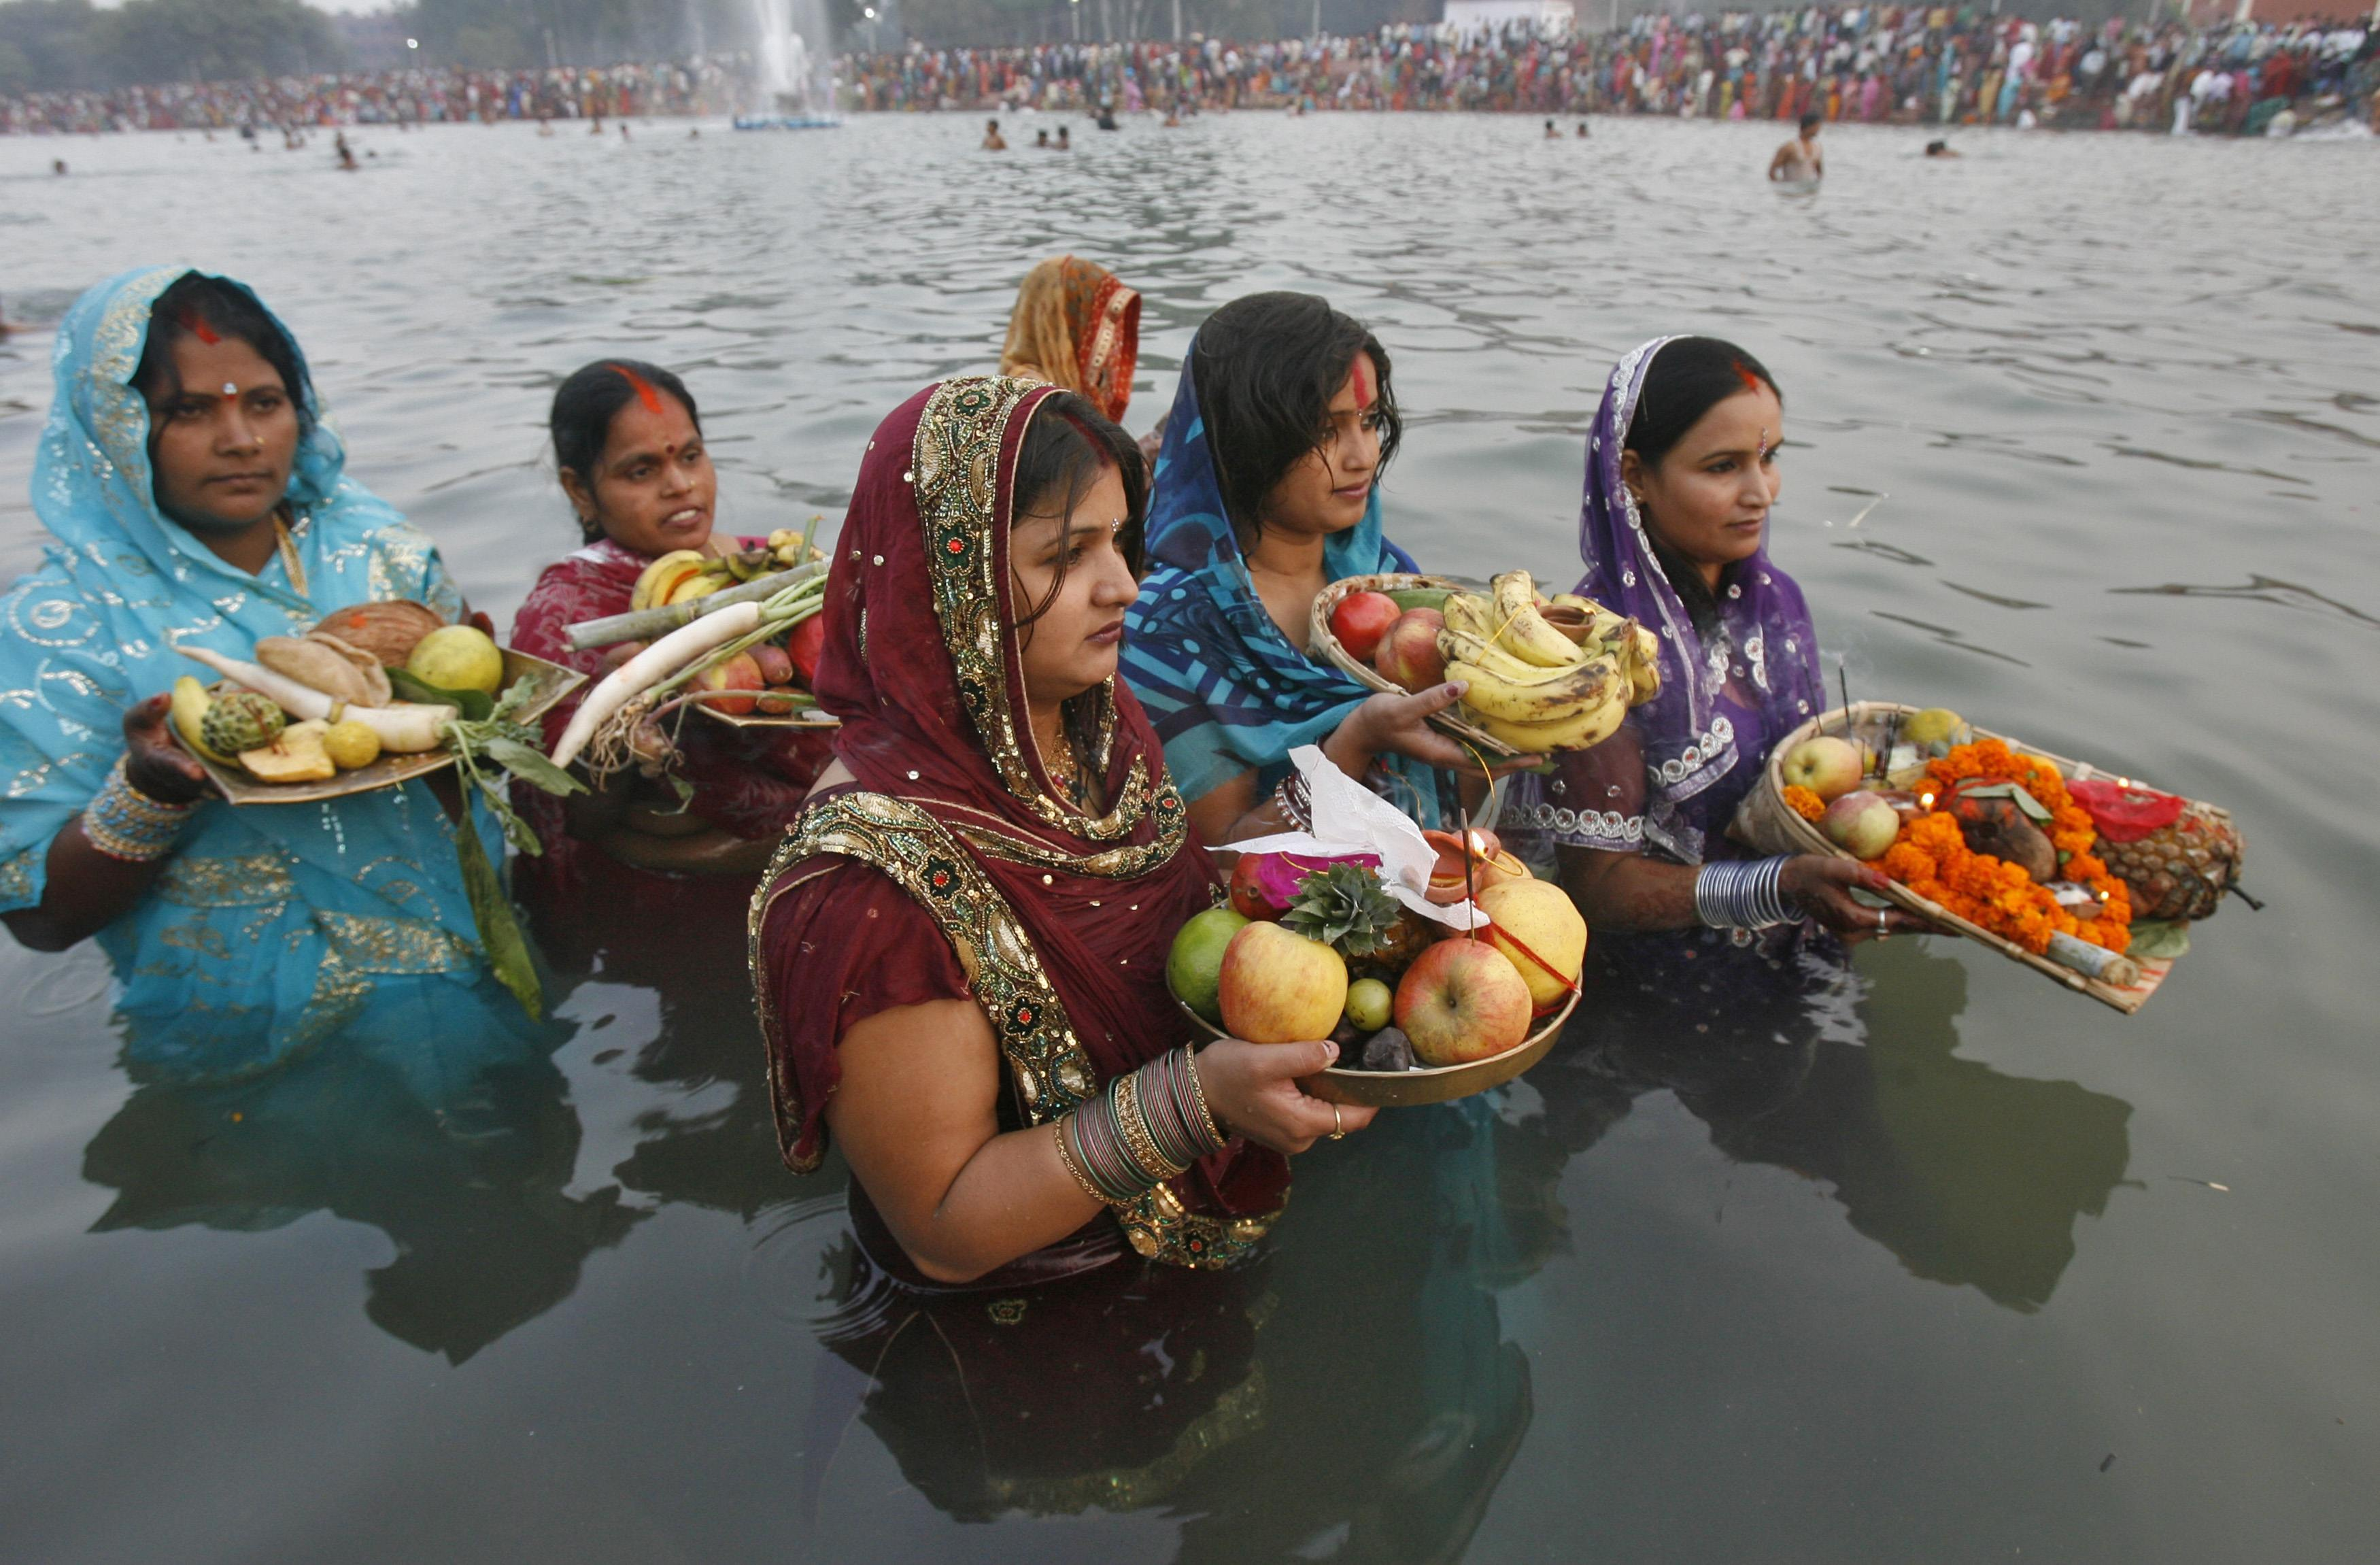 """Hindu devotees offer prayers to the Sun god during the Hindu religious festival """"Chhat Puja"""" in the northern Indian city of Chandigarh November 1, 2011. Hindu devotees worship the Sun god and fast all day for the betterment of their family and society during the festival. REUTERS/Ajay Verma (INDIA - Tags: RELIGION SOCIETY)"""